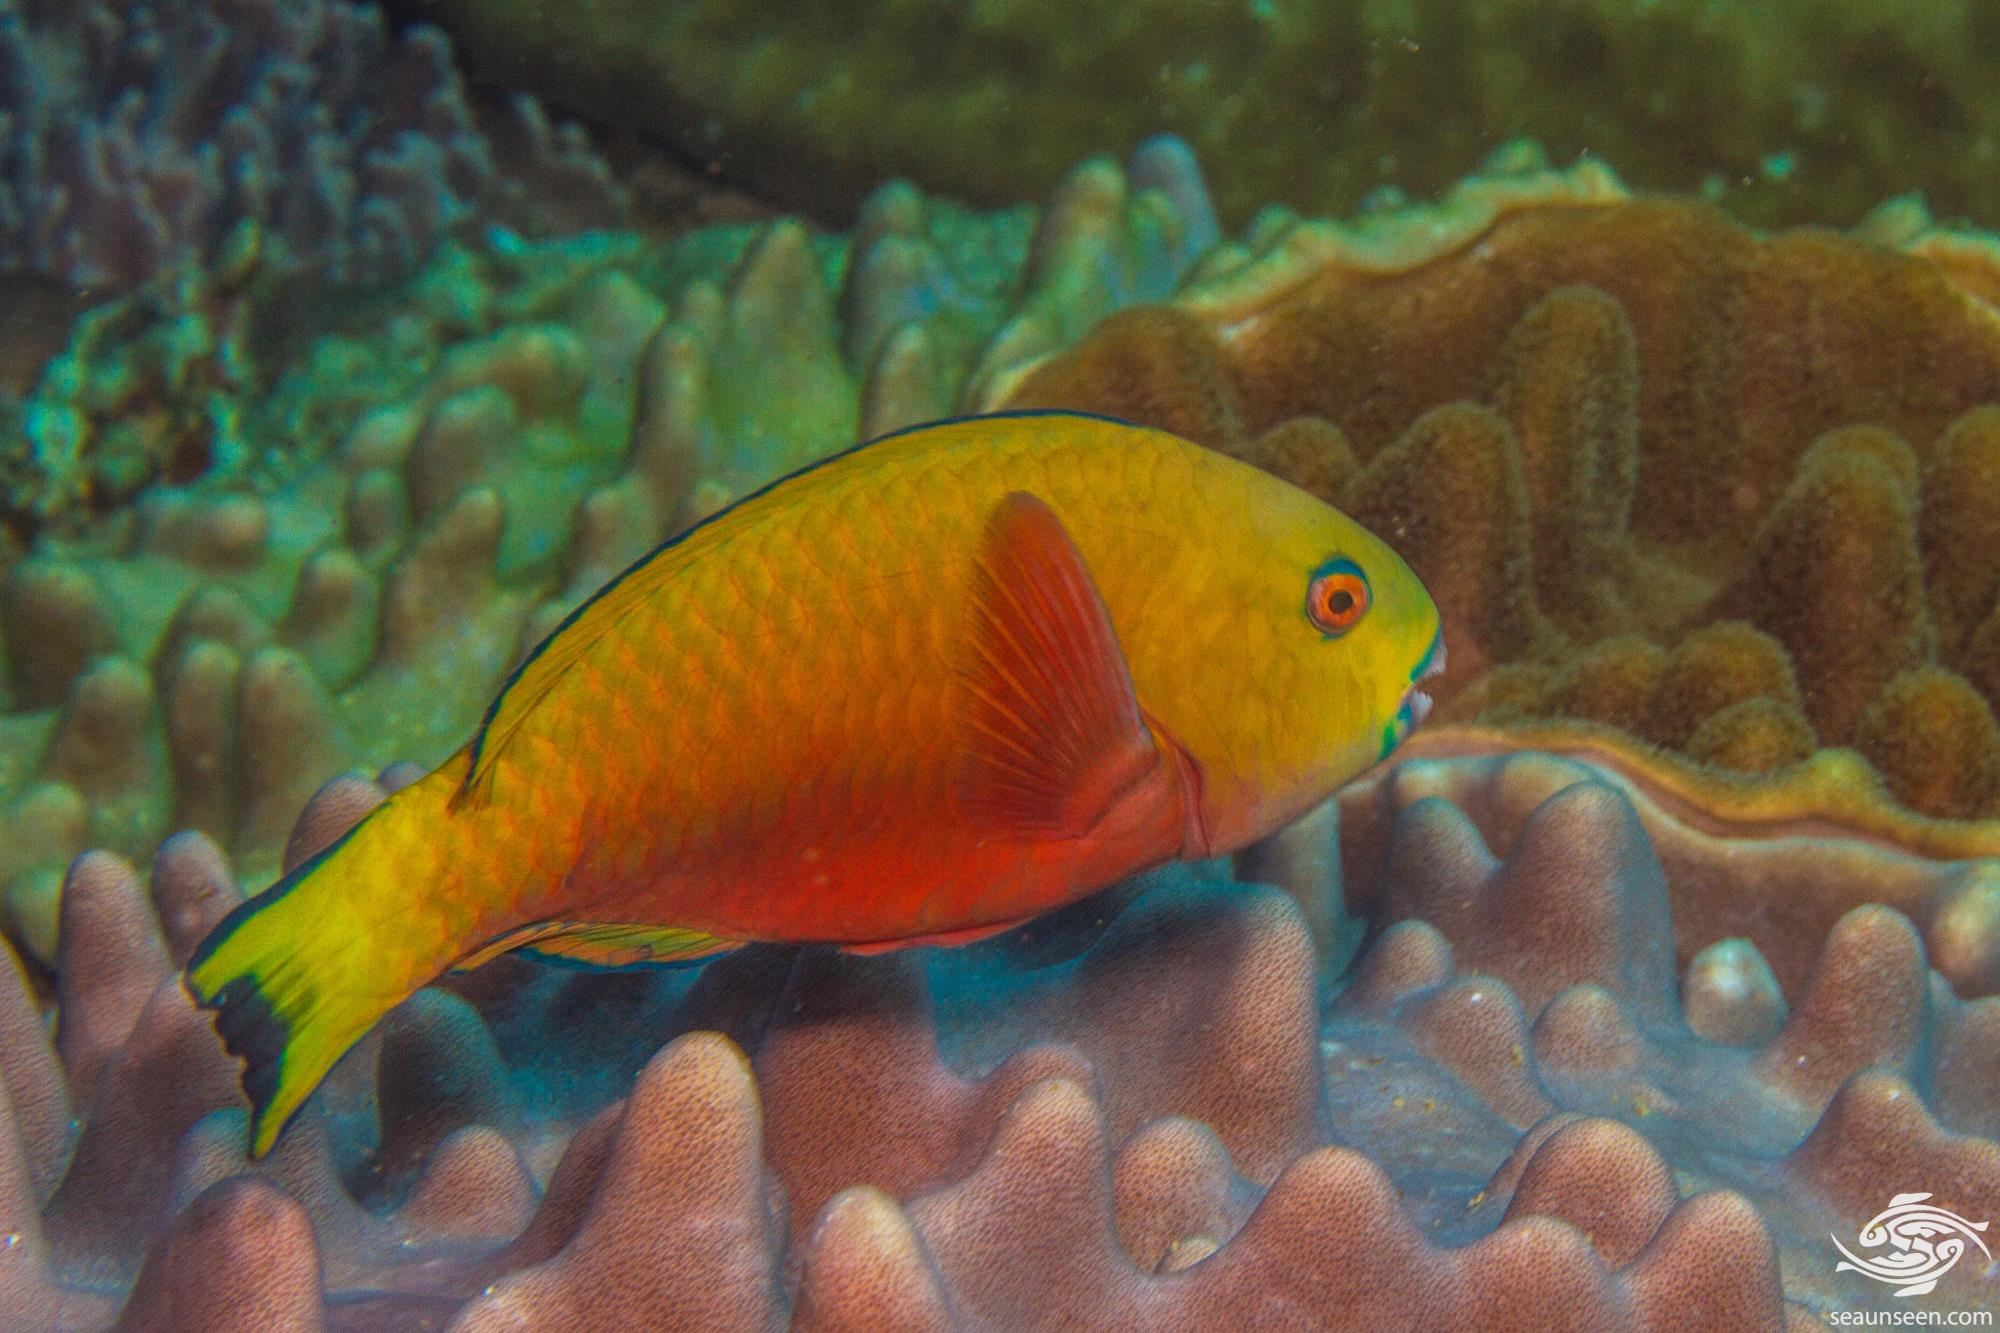 Initial Phase female Steephead parrotfish (Chlorurus strongylocephalus) also known as the Roundhead Parrotfish